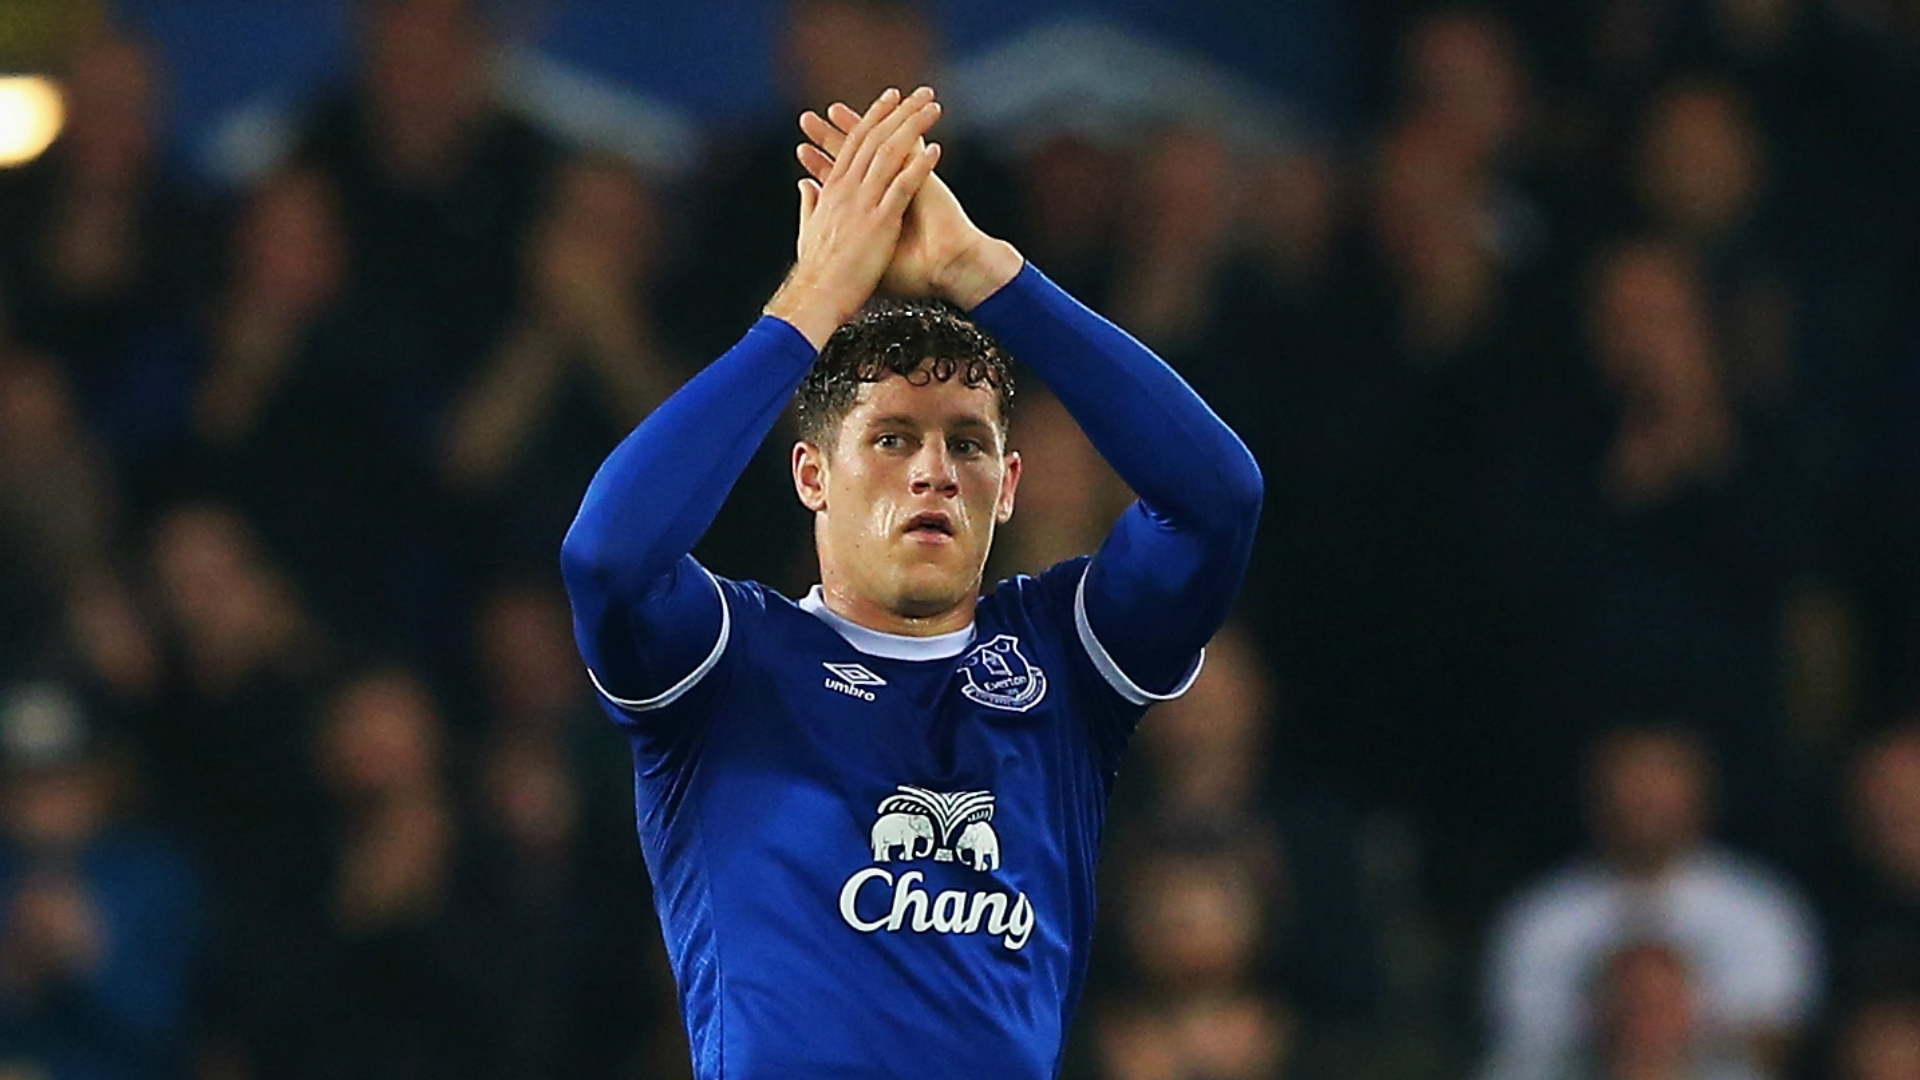 Ronald Koeman says Everton will make a statement on Ross Barkley's future